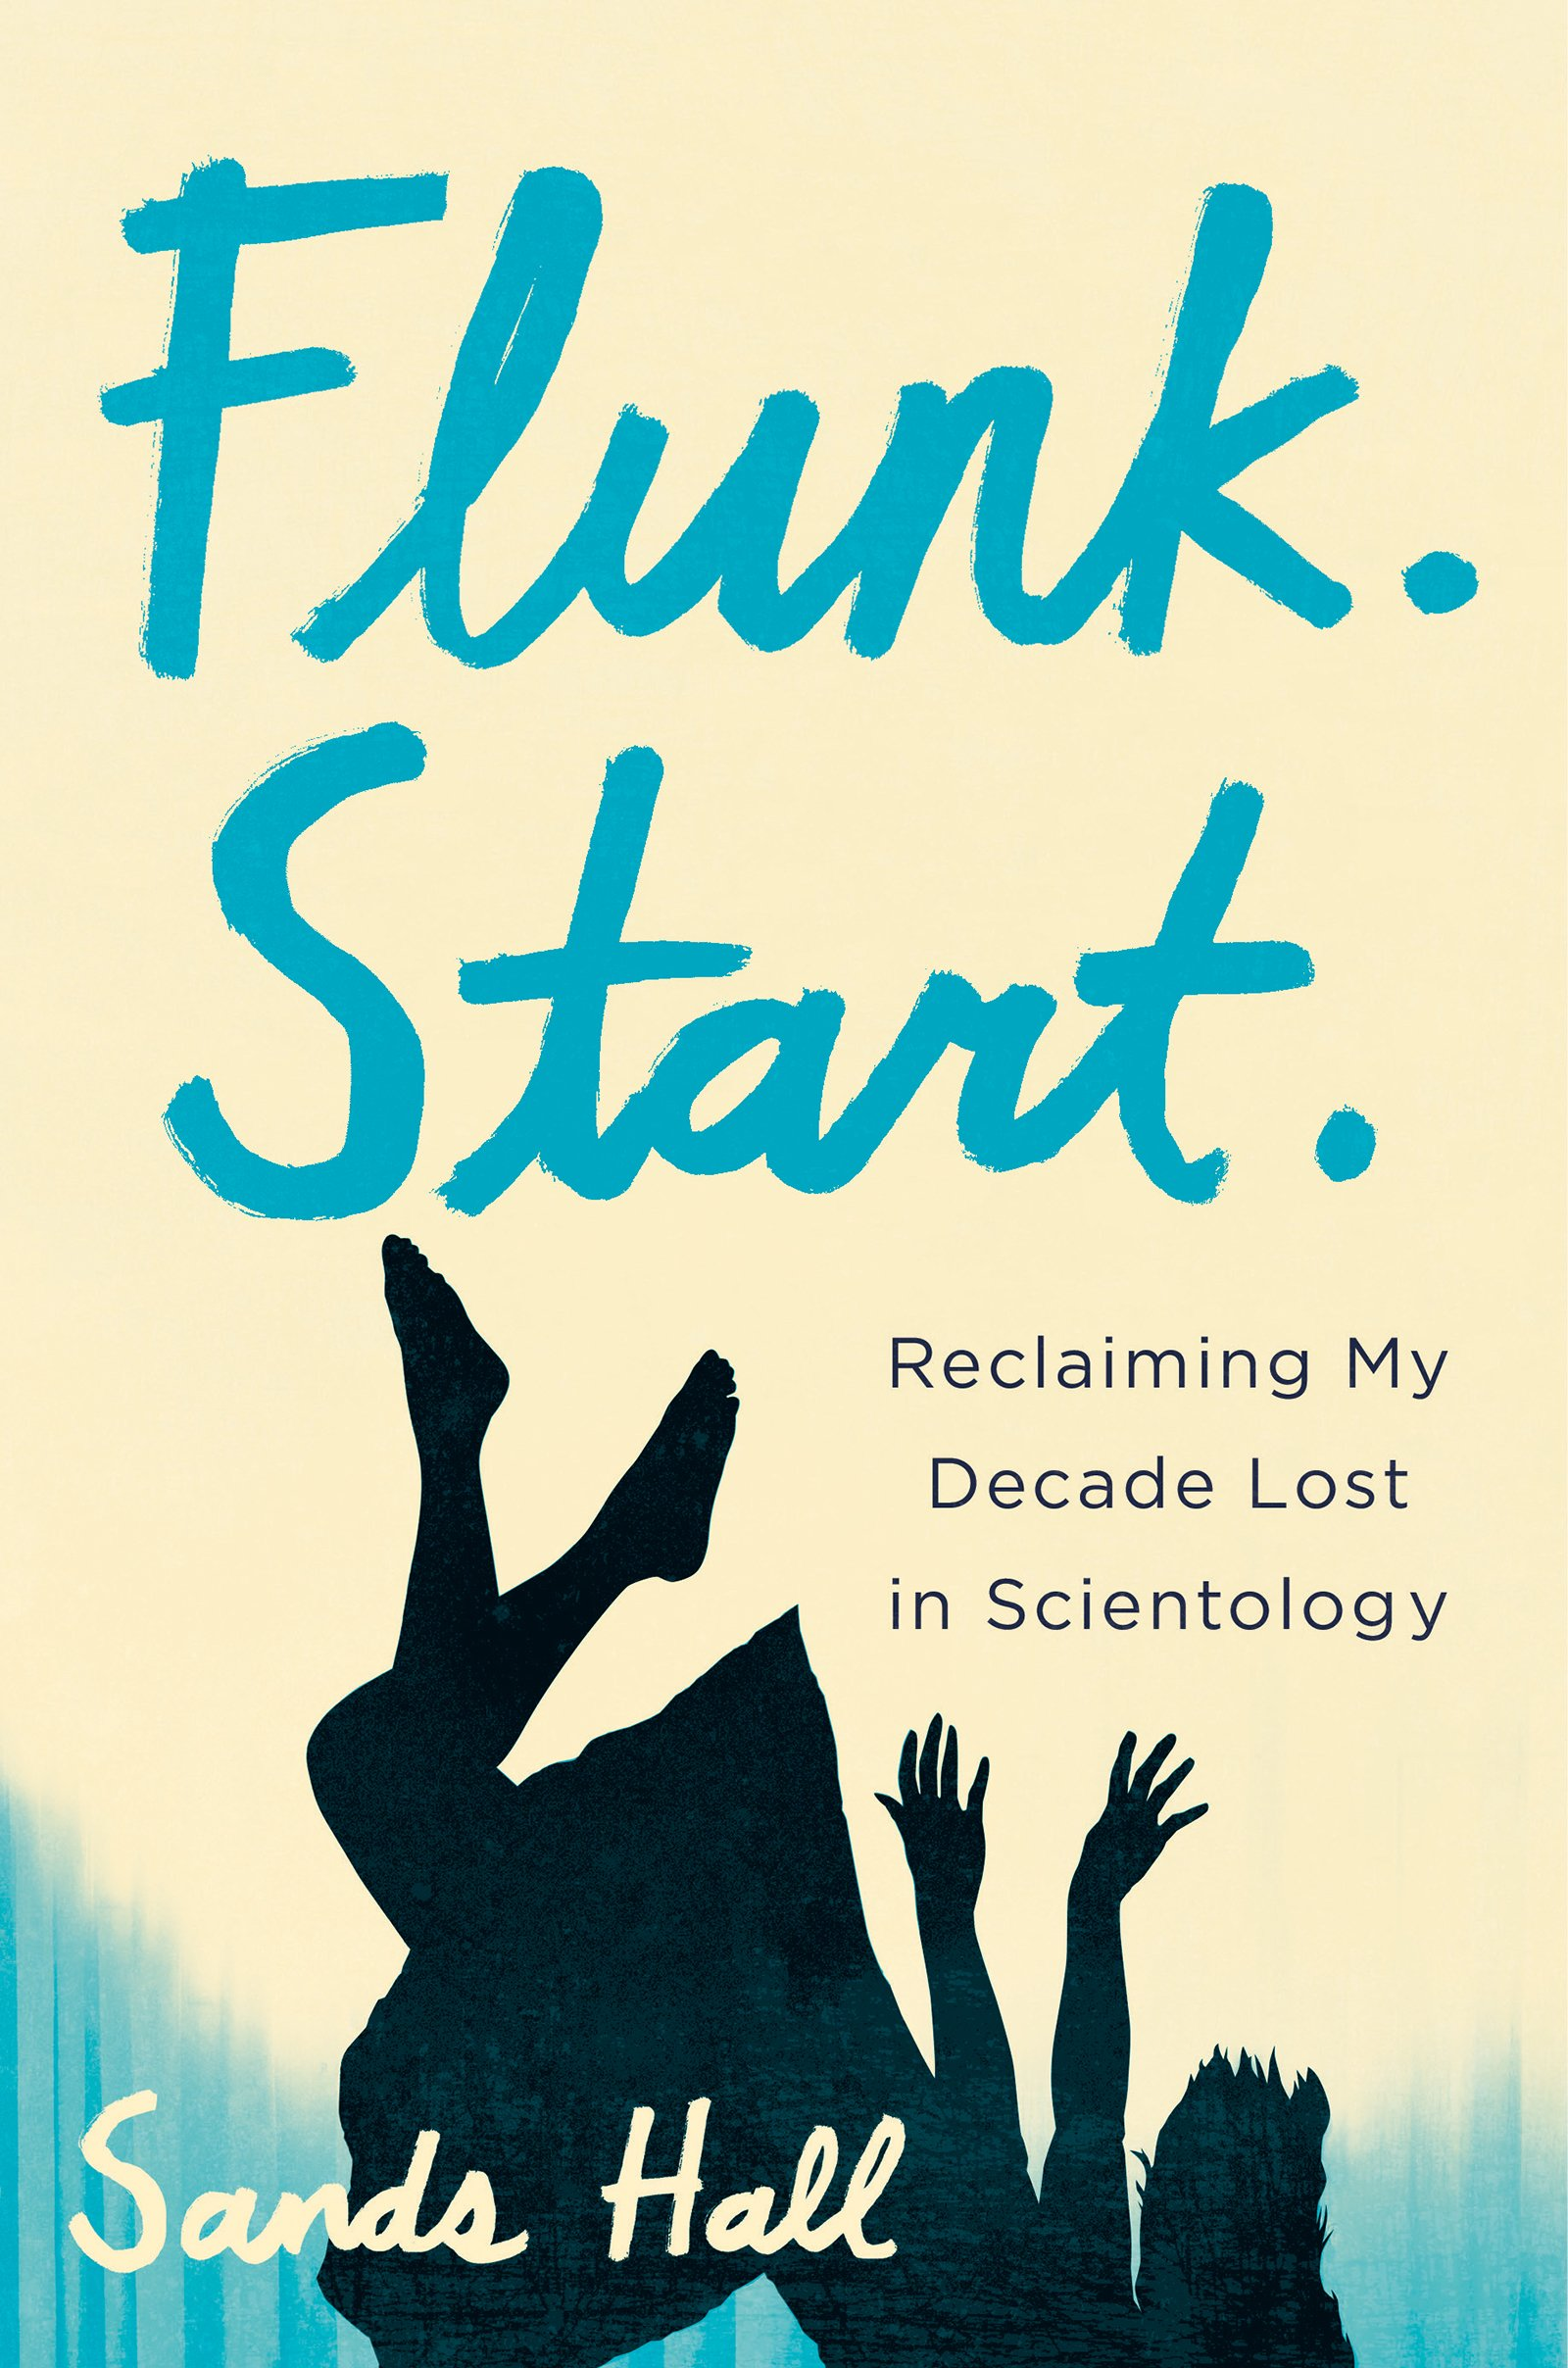 Flunk. Start.: Reclaiming My Decade Lost in Scientology: Amazon.es: Sands Hall: Libros en idiomas extranjeros